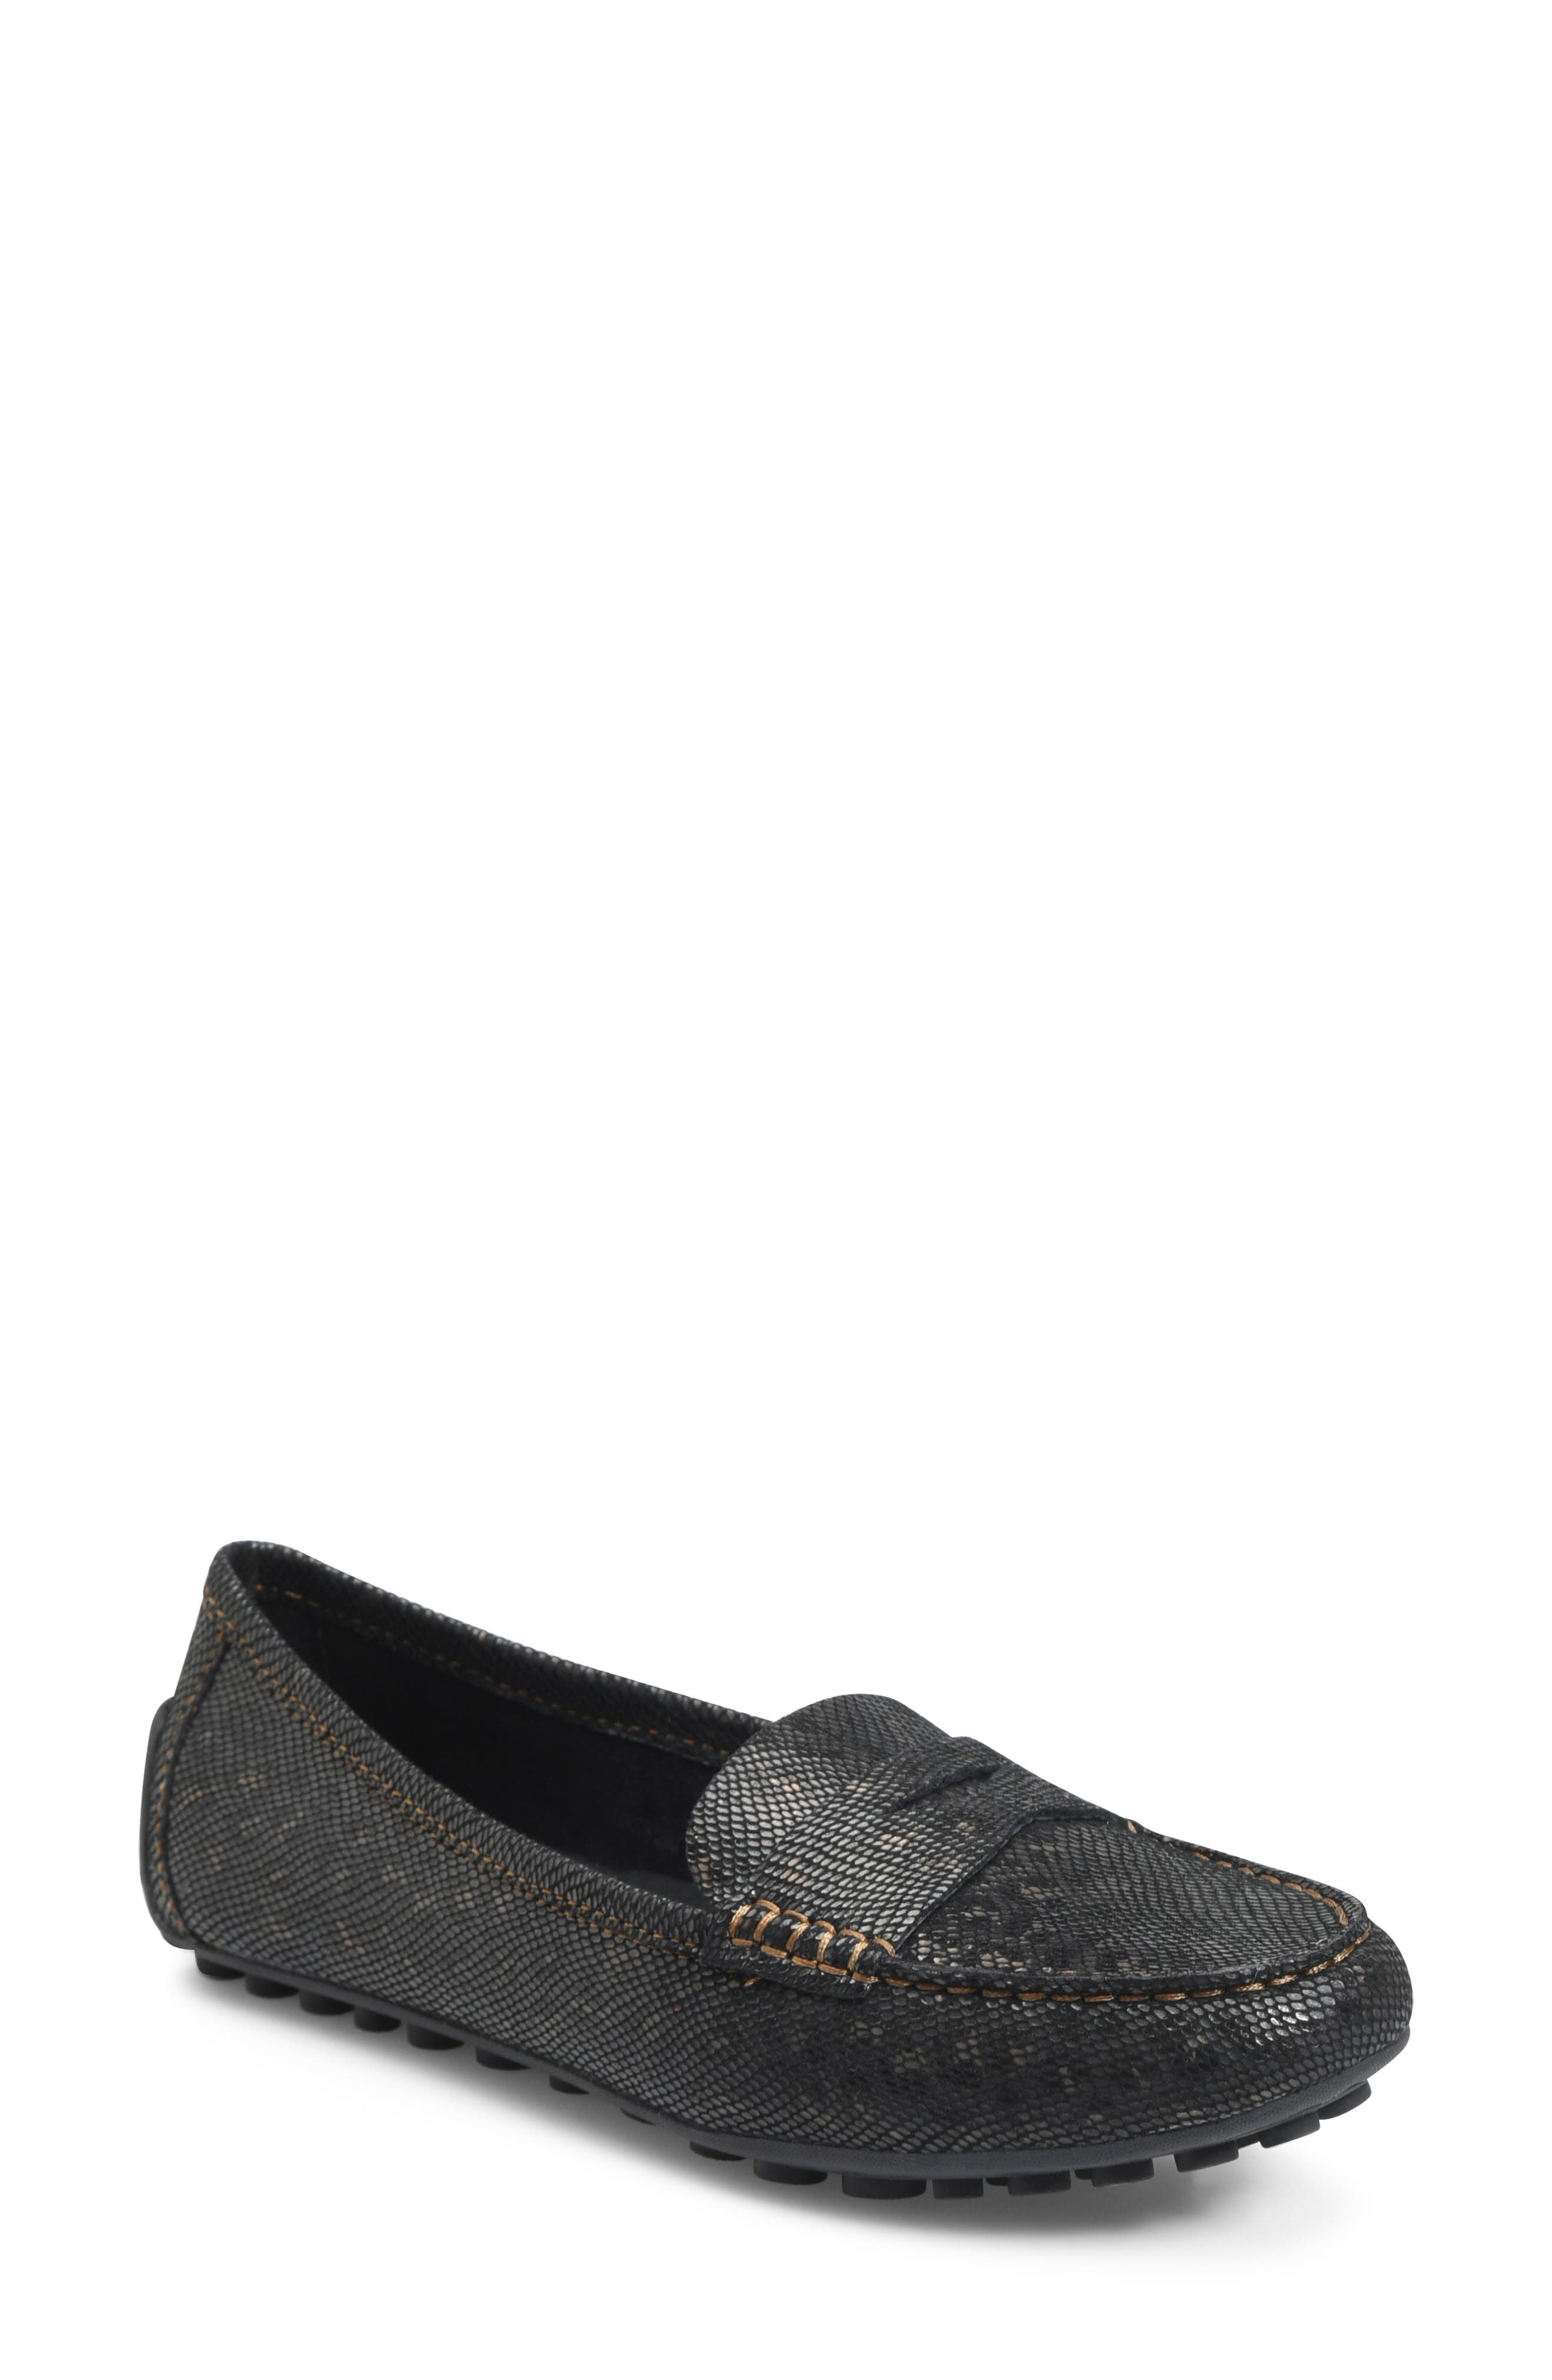 Malena Driving Loafer,                             Main thumbnail 1, color,                             012